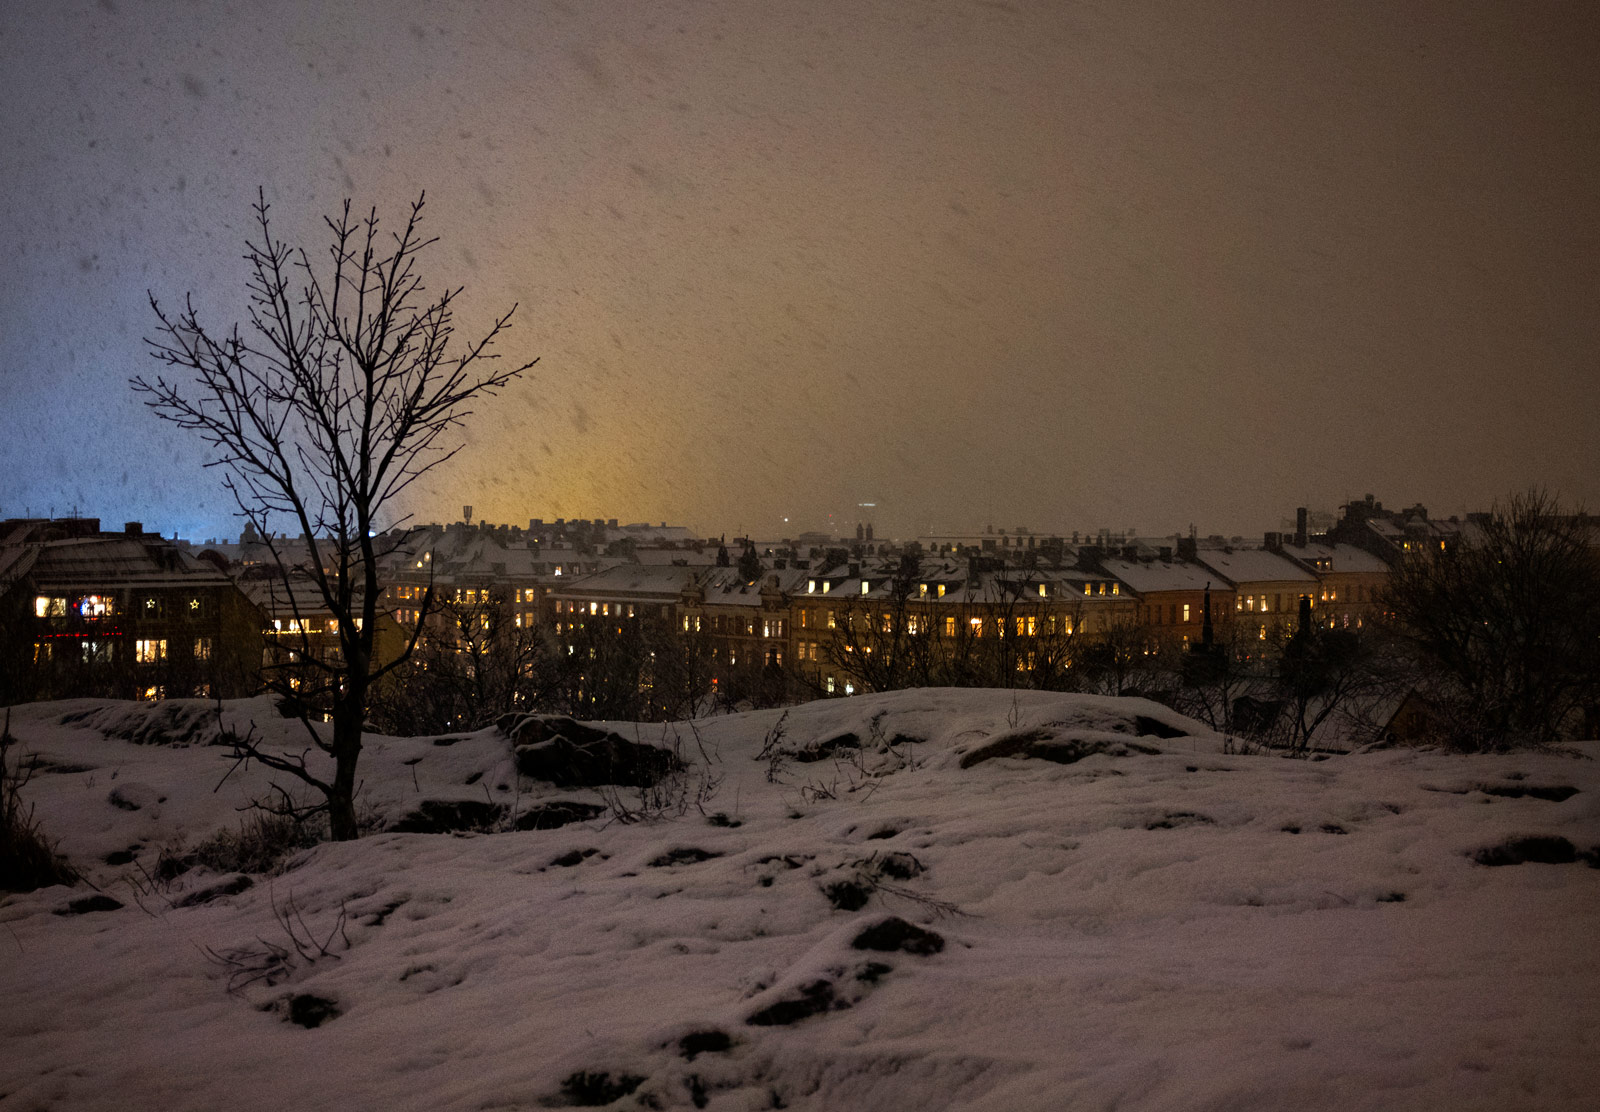 View of snow on rooftops